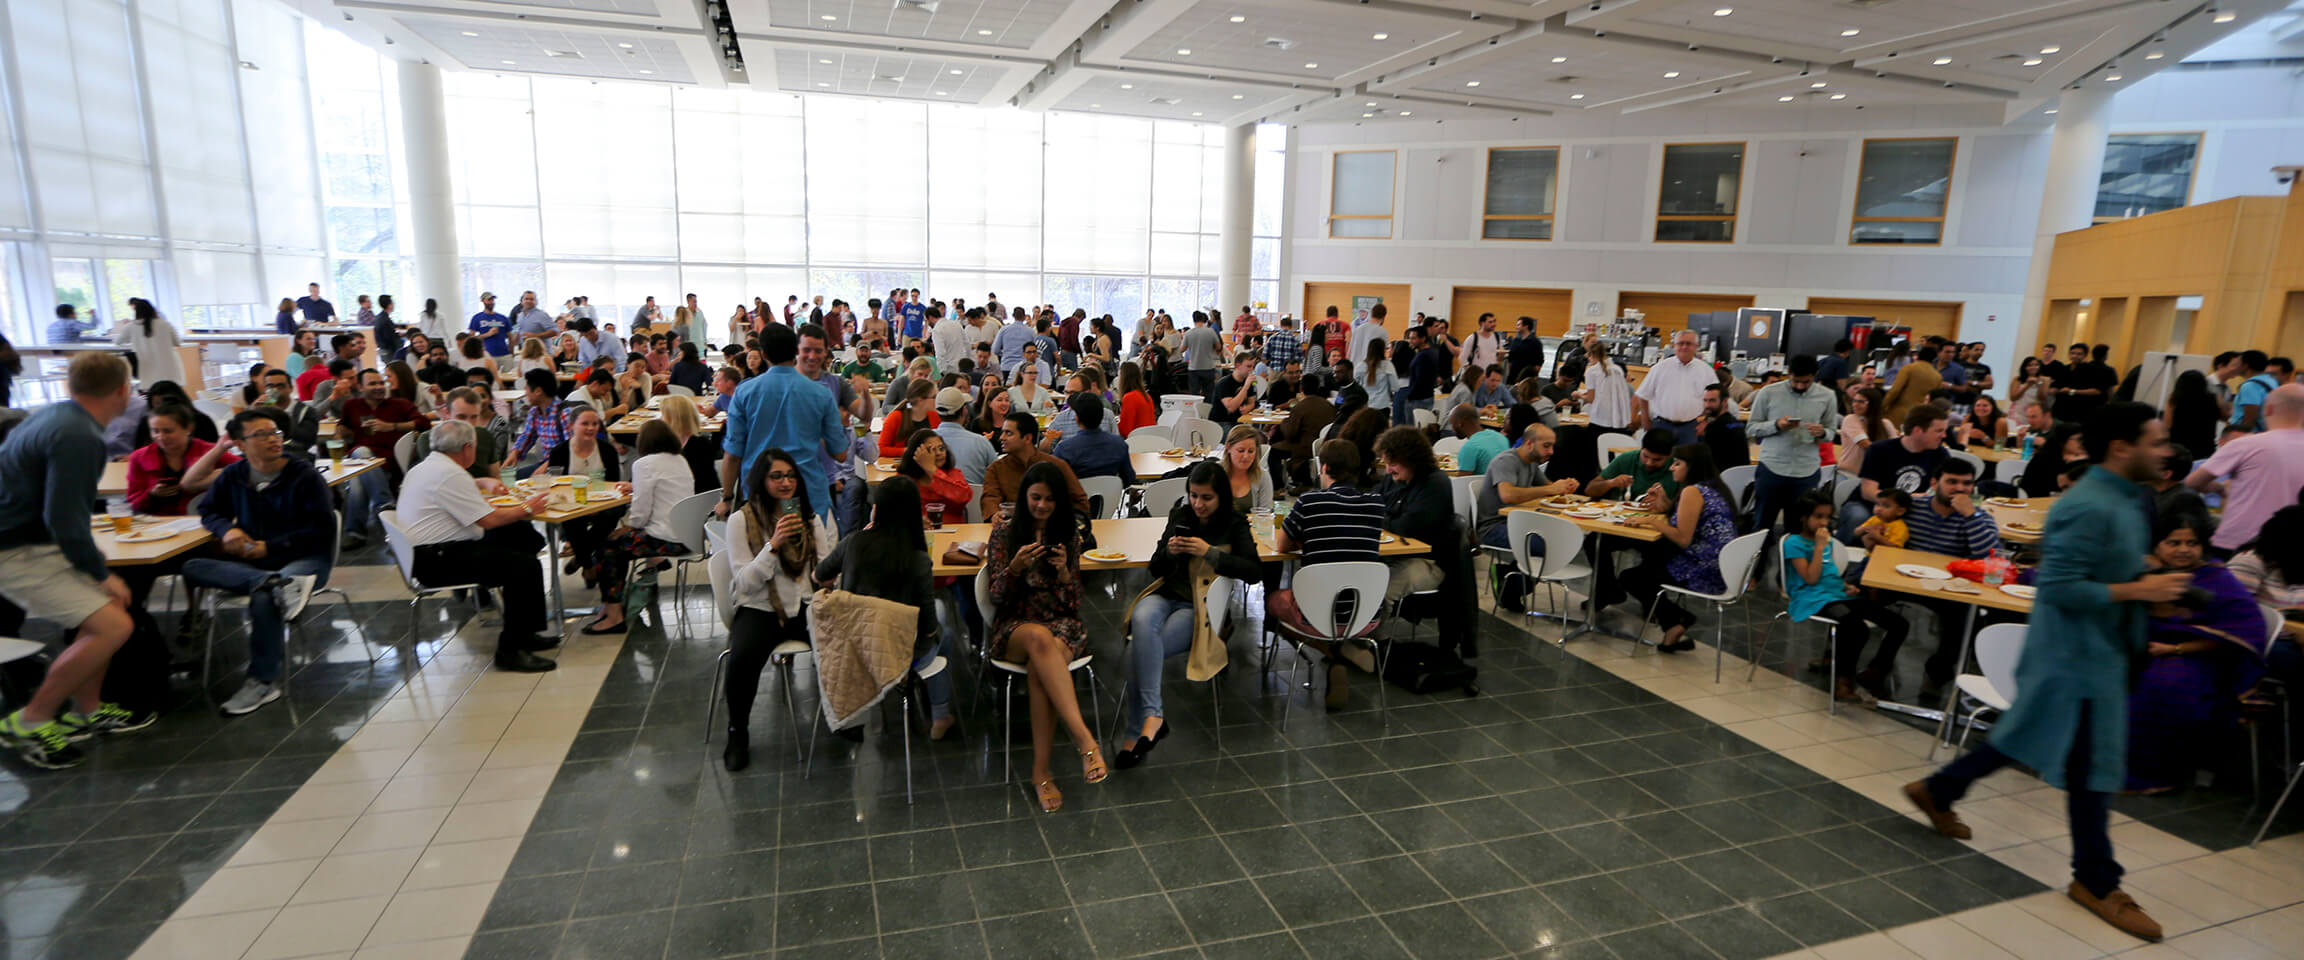 Hundreds of student gather for Fuqua Friday in The Fox Center, Fuqua's social hub